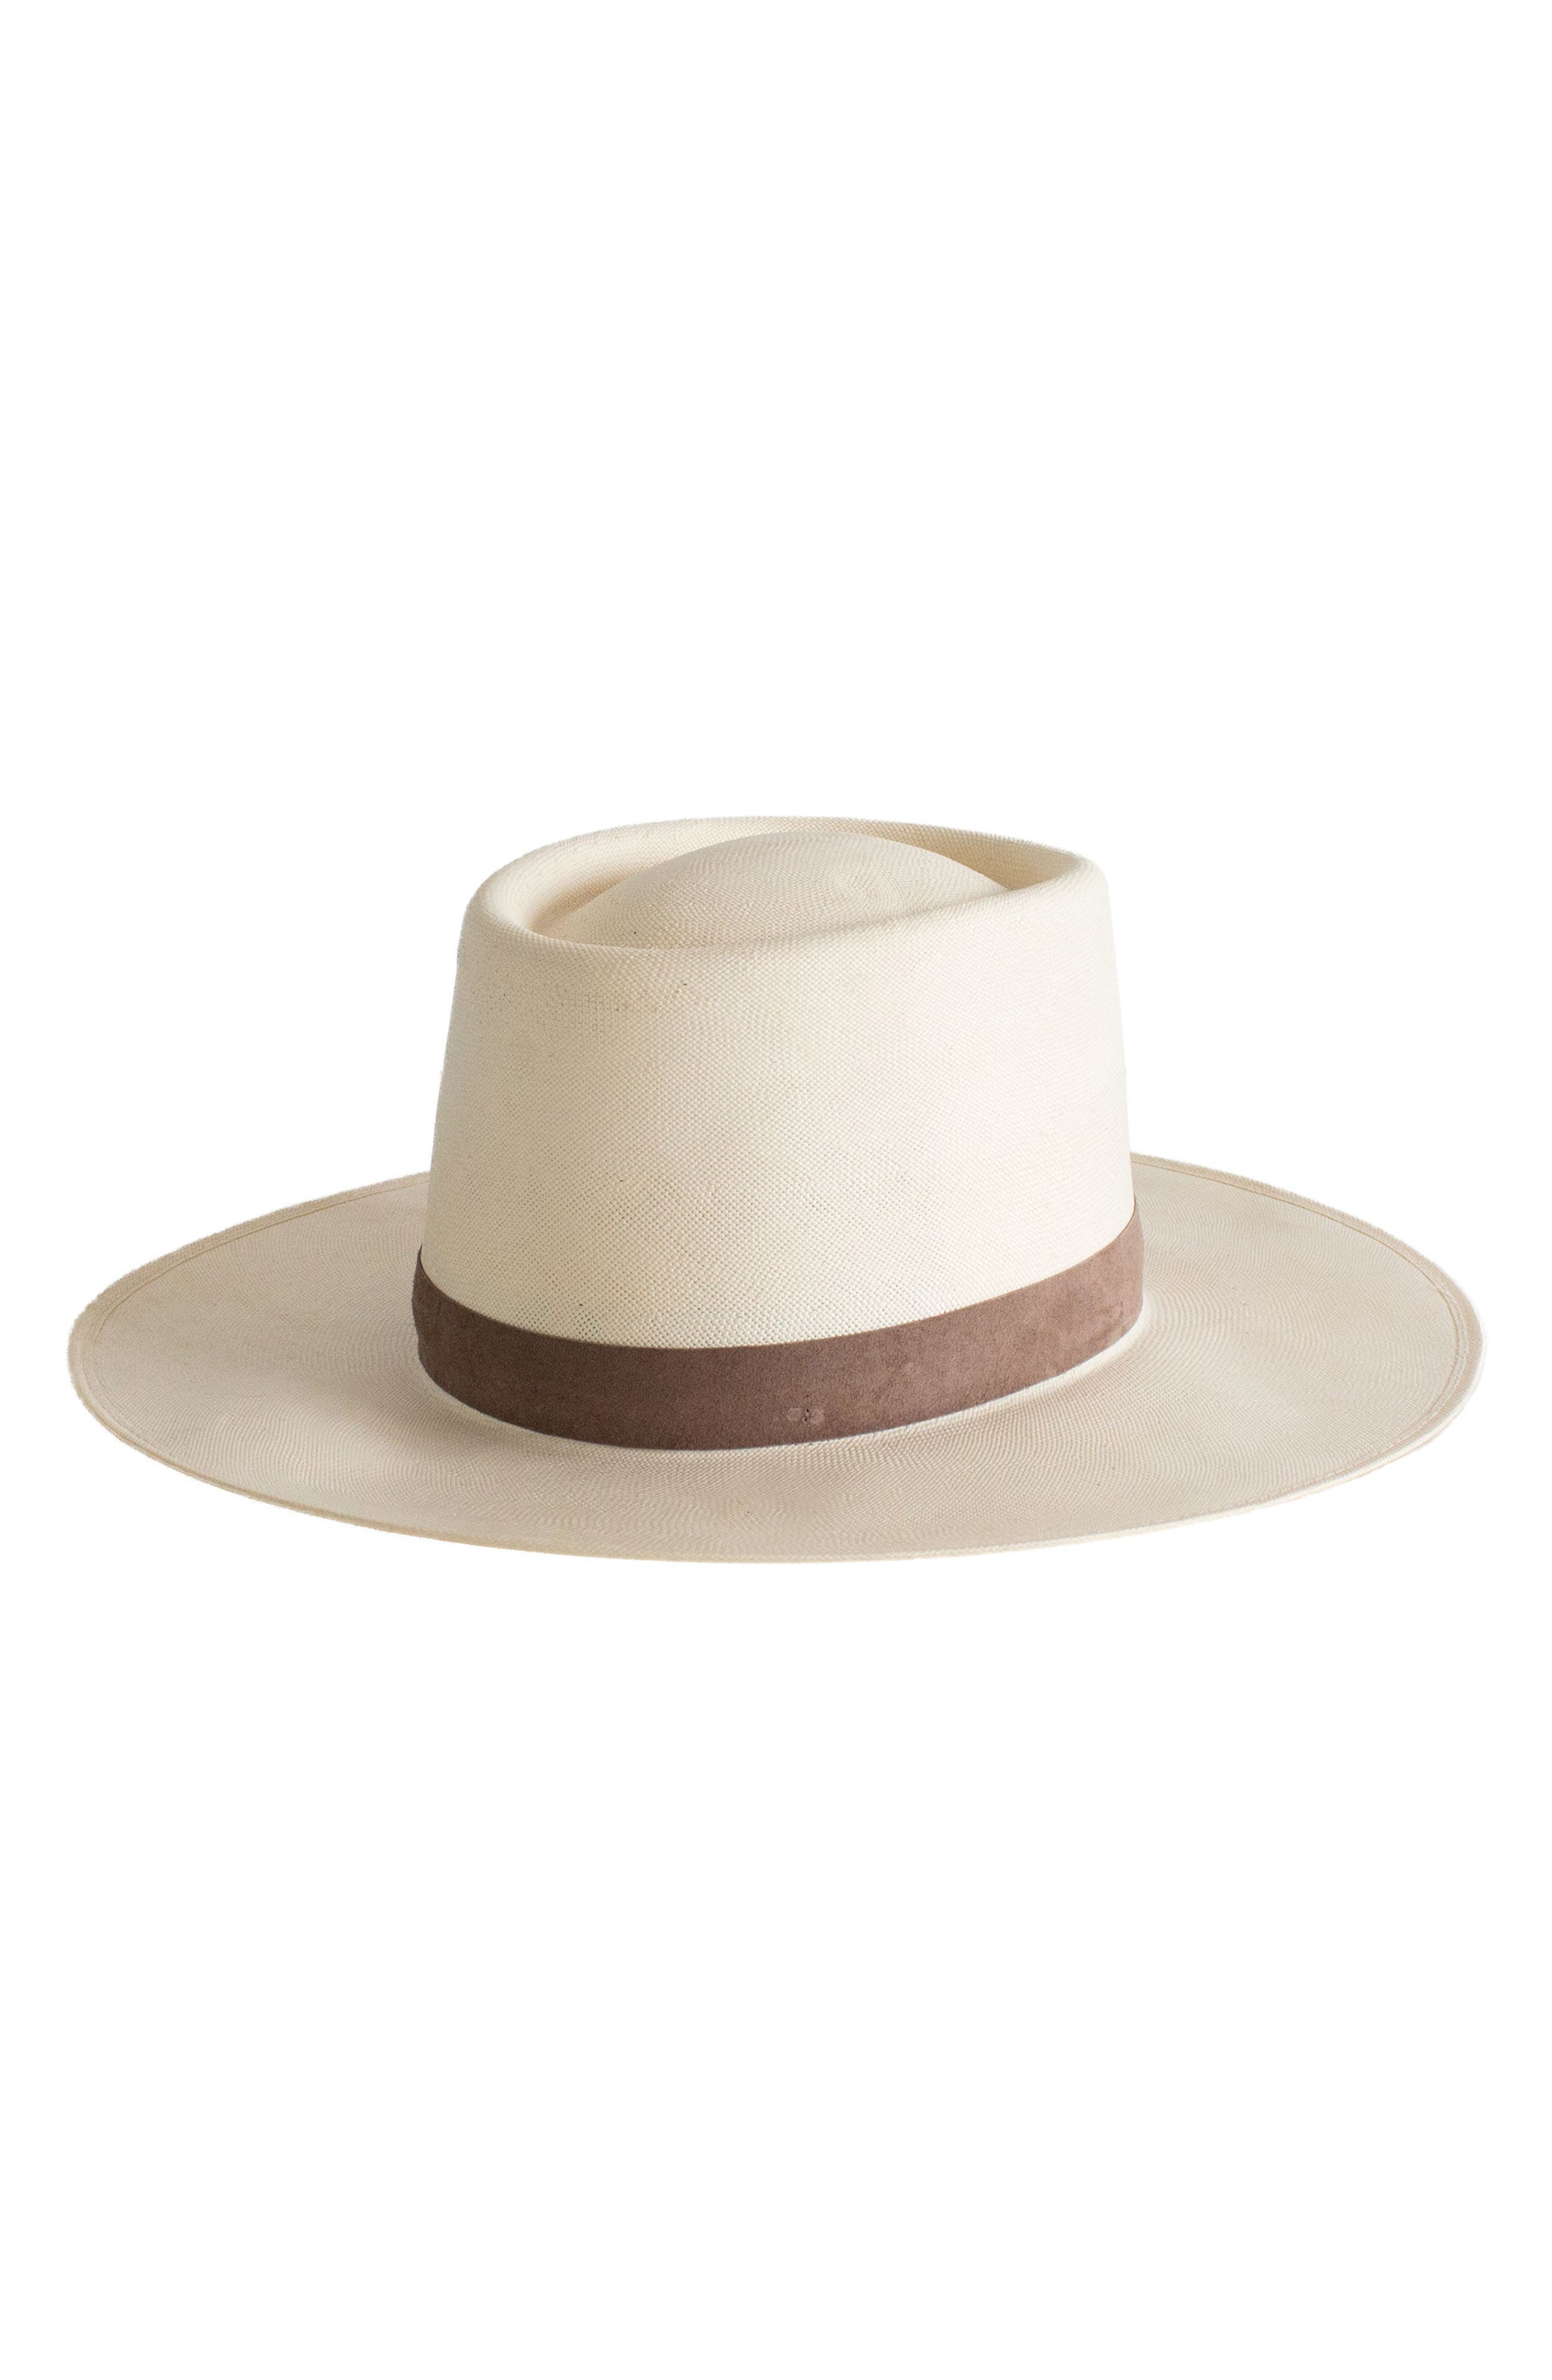 Shea Straw Hat,                         Main,                         color,